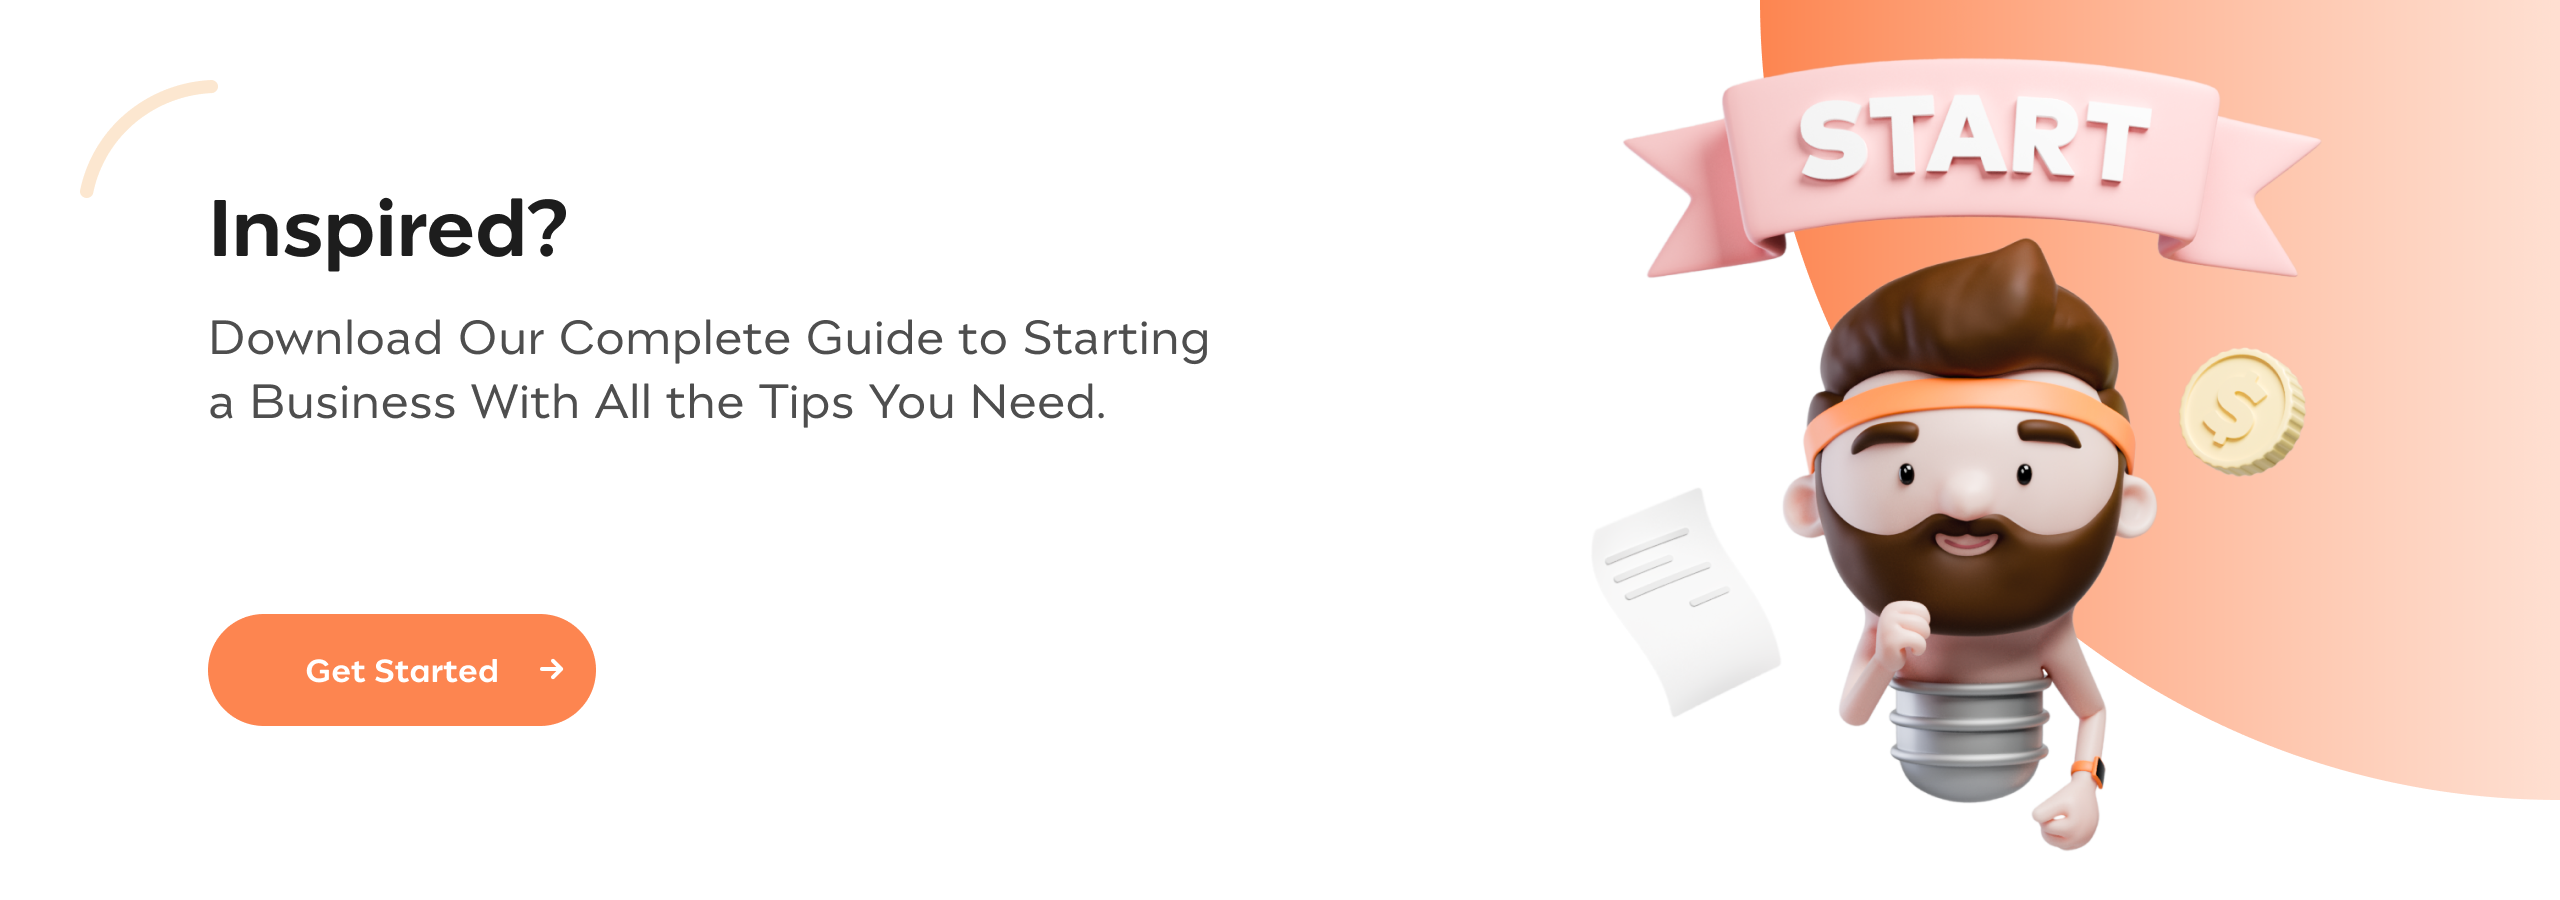 Incfile | Start a Business Guide | Incfile